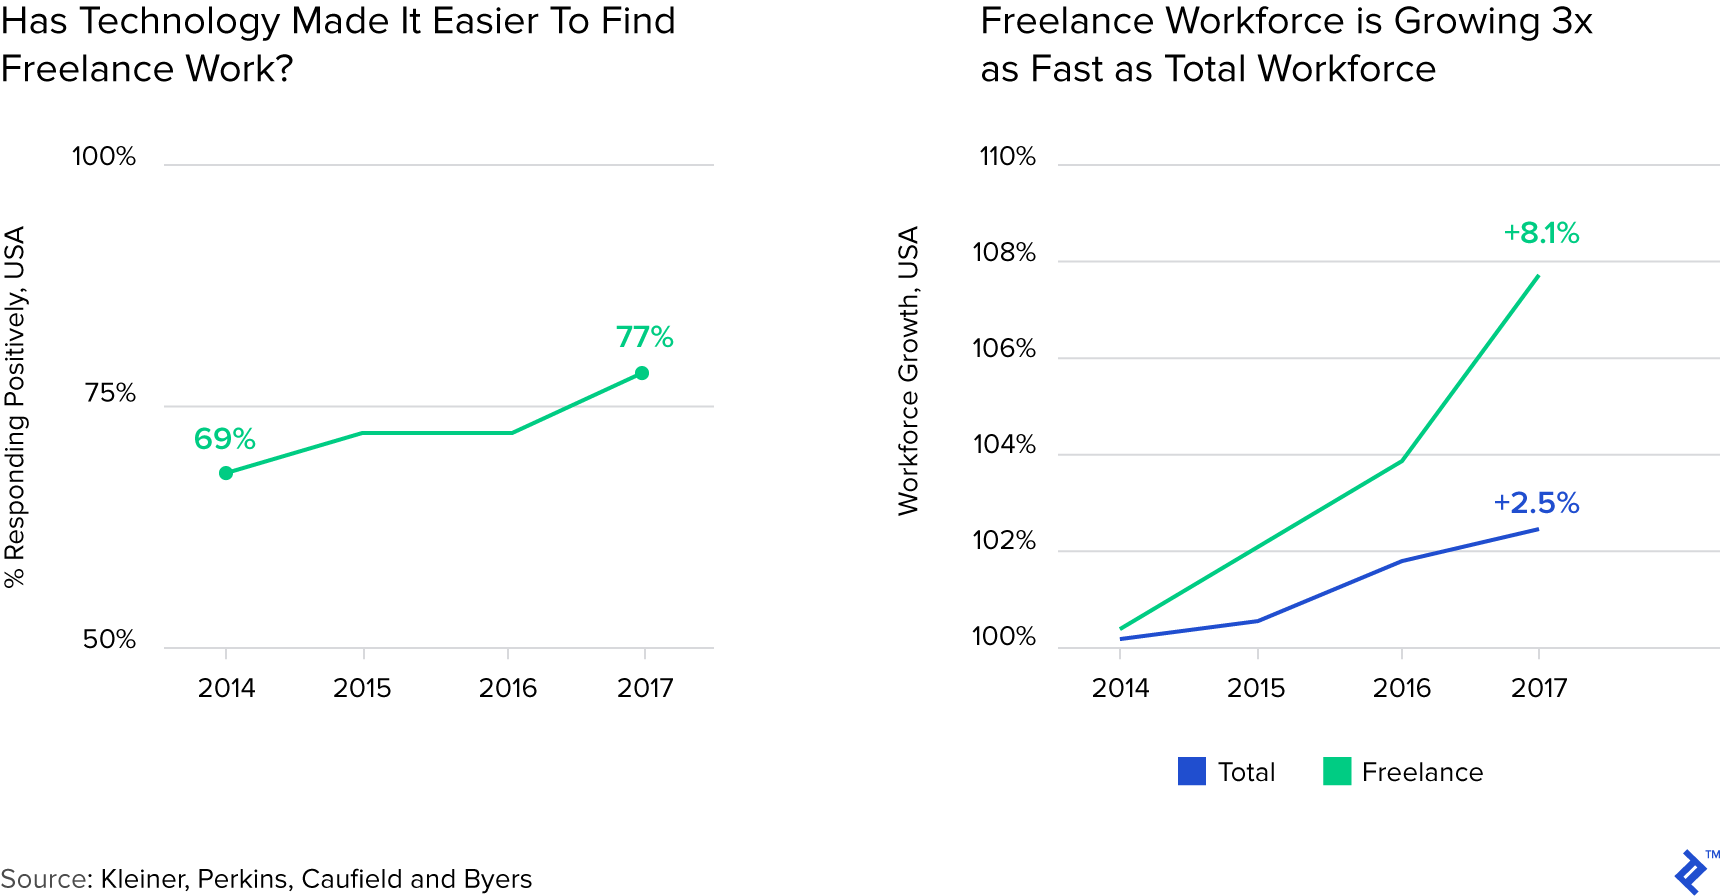 Graphs supporting the idea that technology is making freelance work far easier to find.